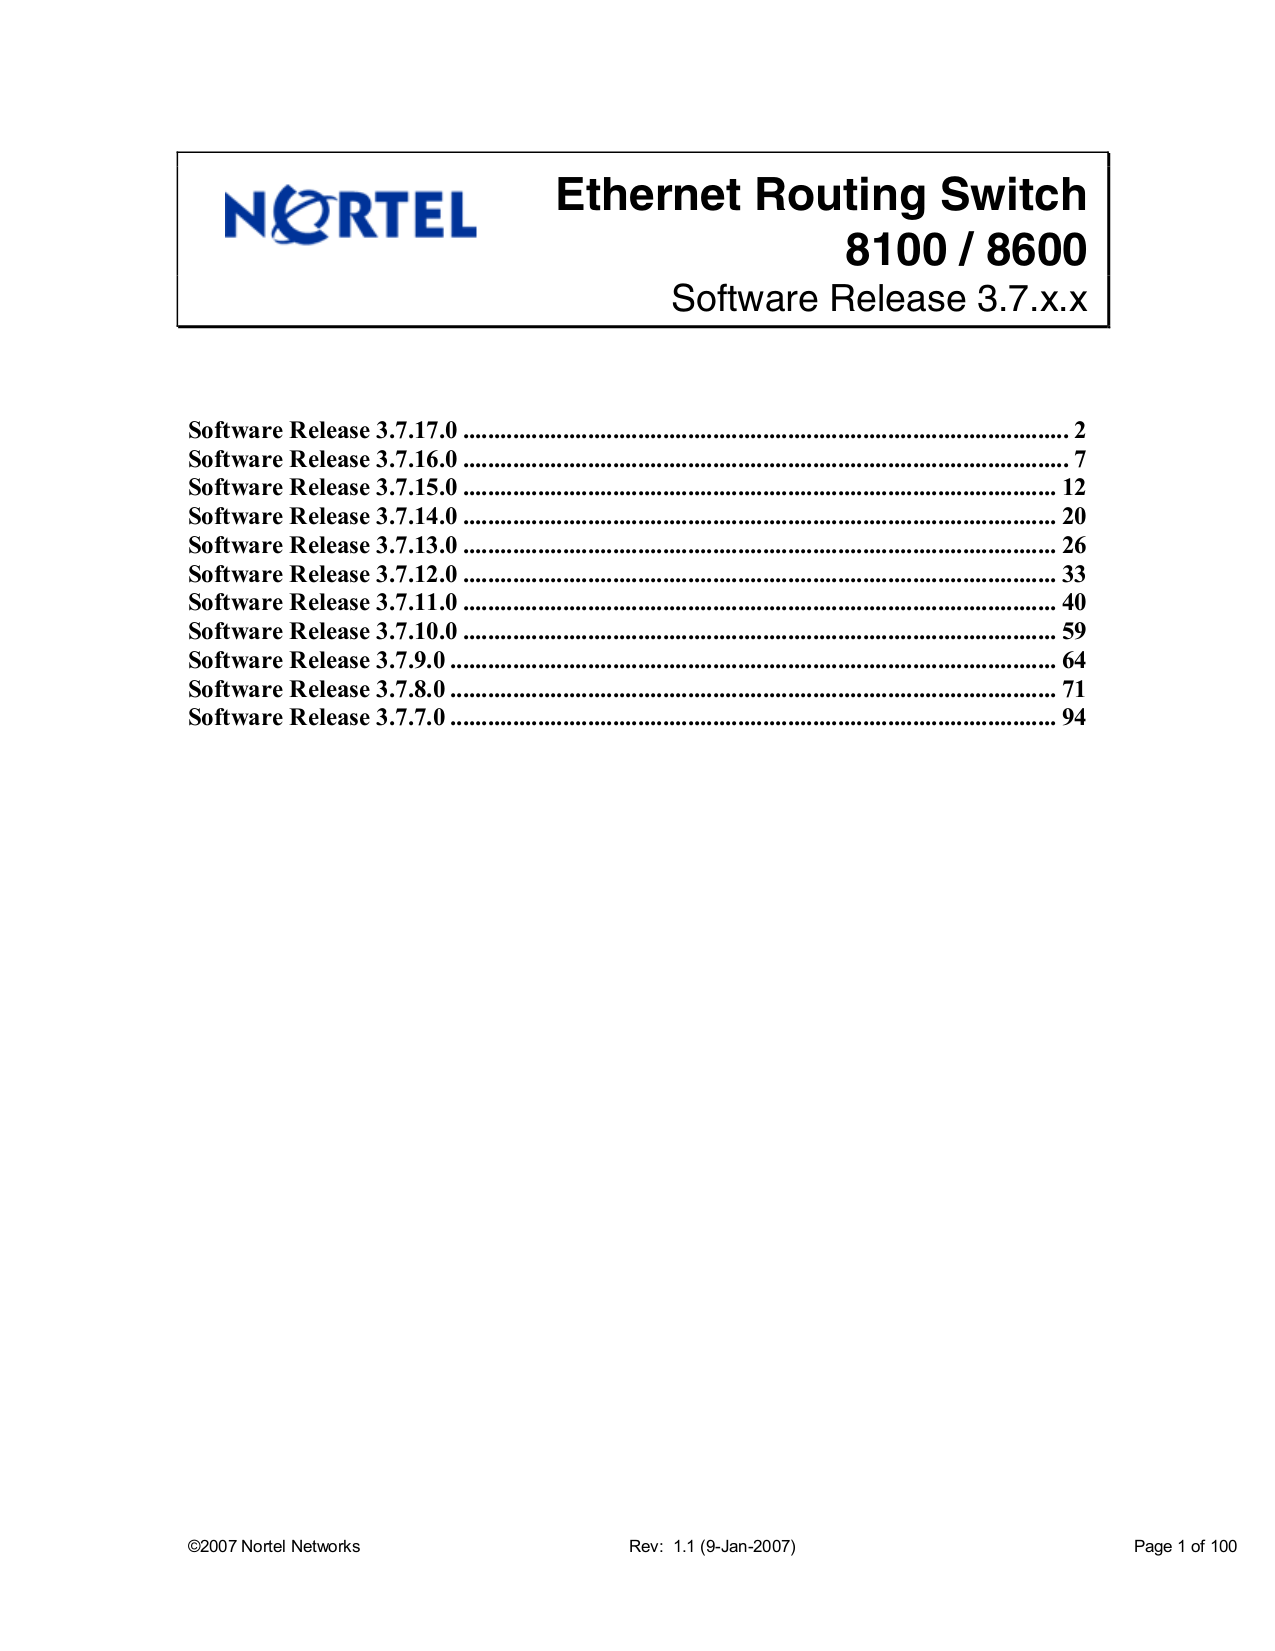 pdf for Nortel Switch Passport 1100 manual